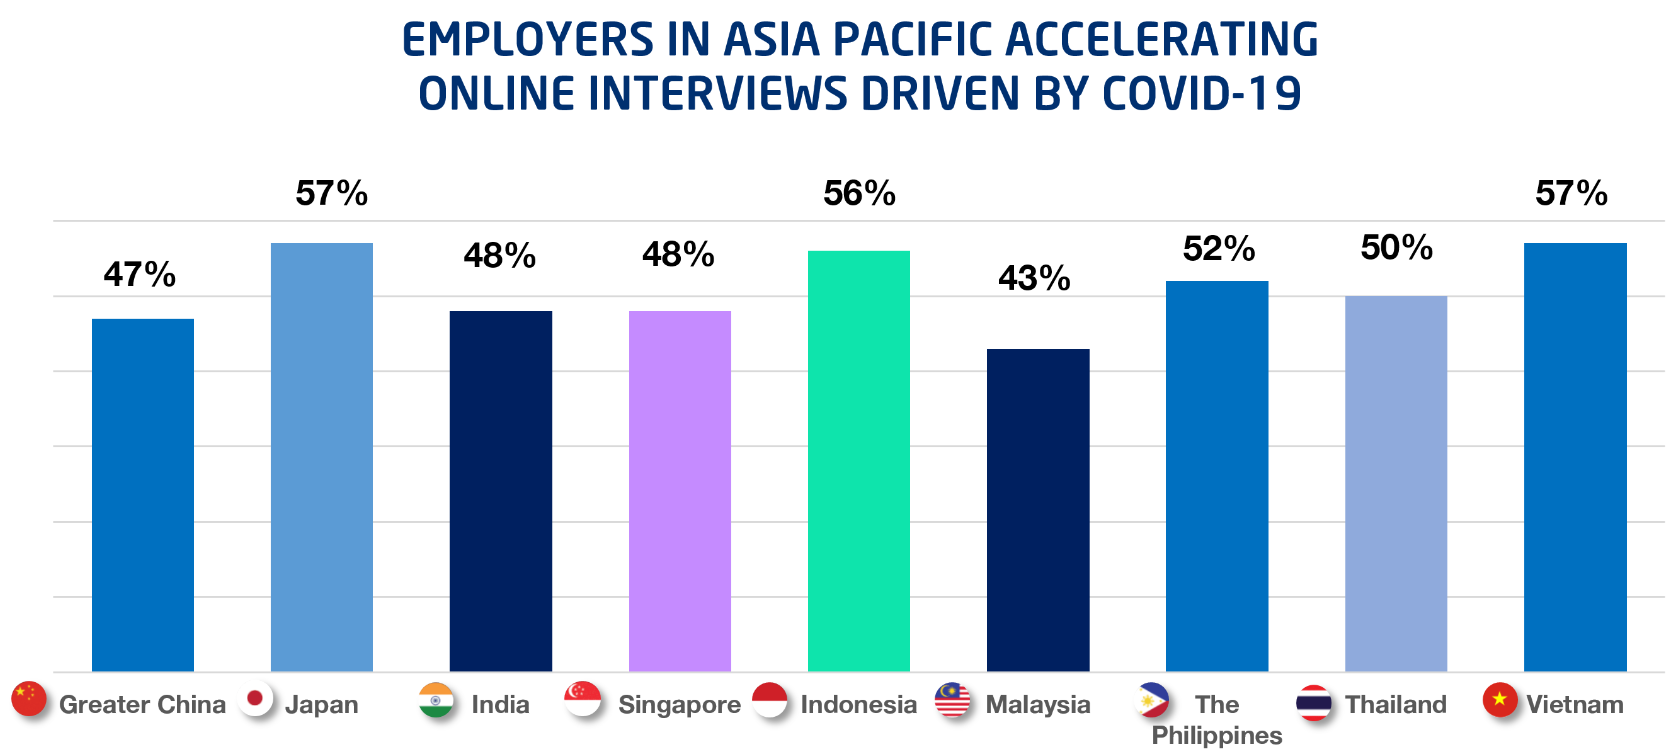 EMPLOYERS IN ASIA PACIFIC ACCELERATING ONLINE INTERVIEWS DRIVEN BY COVID-19